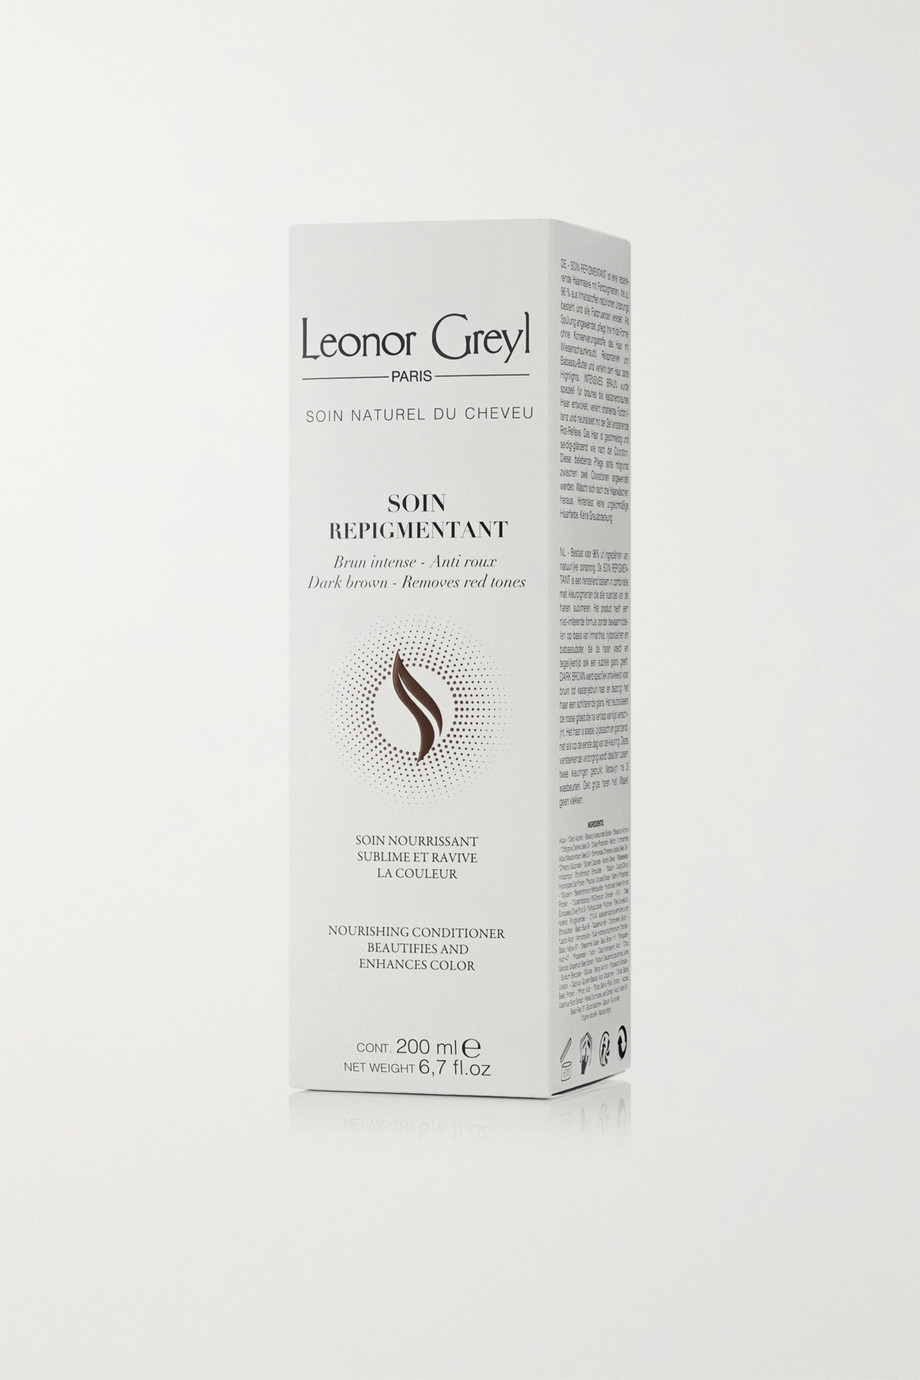 Leonor Greyl Paris Soin Repigmentant Nourishing Conditioner - Dark Brown, 200ml